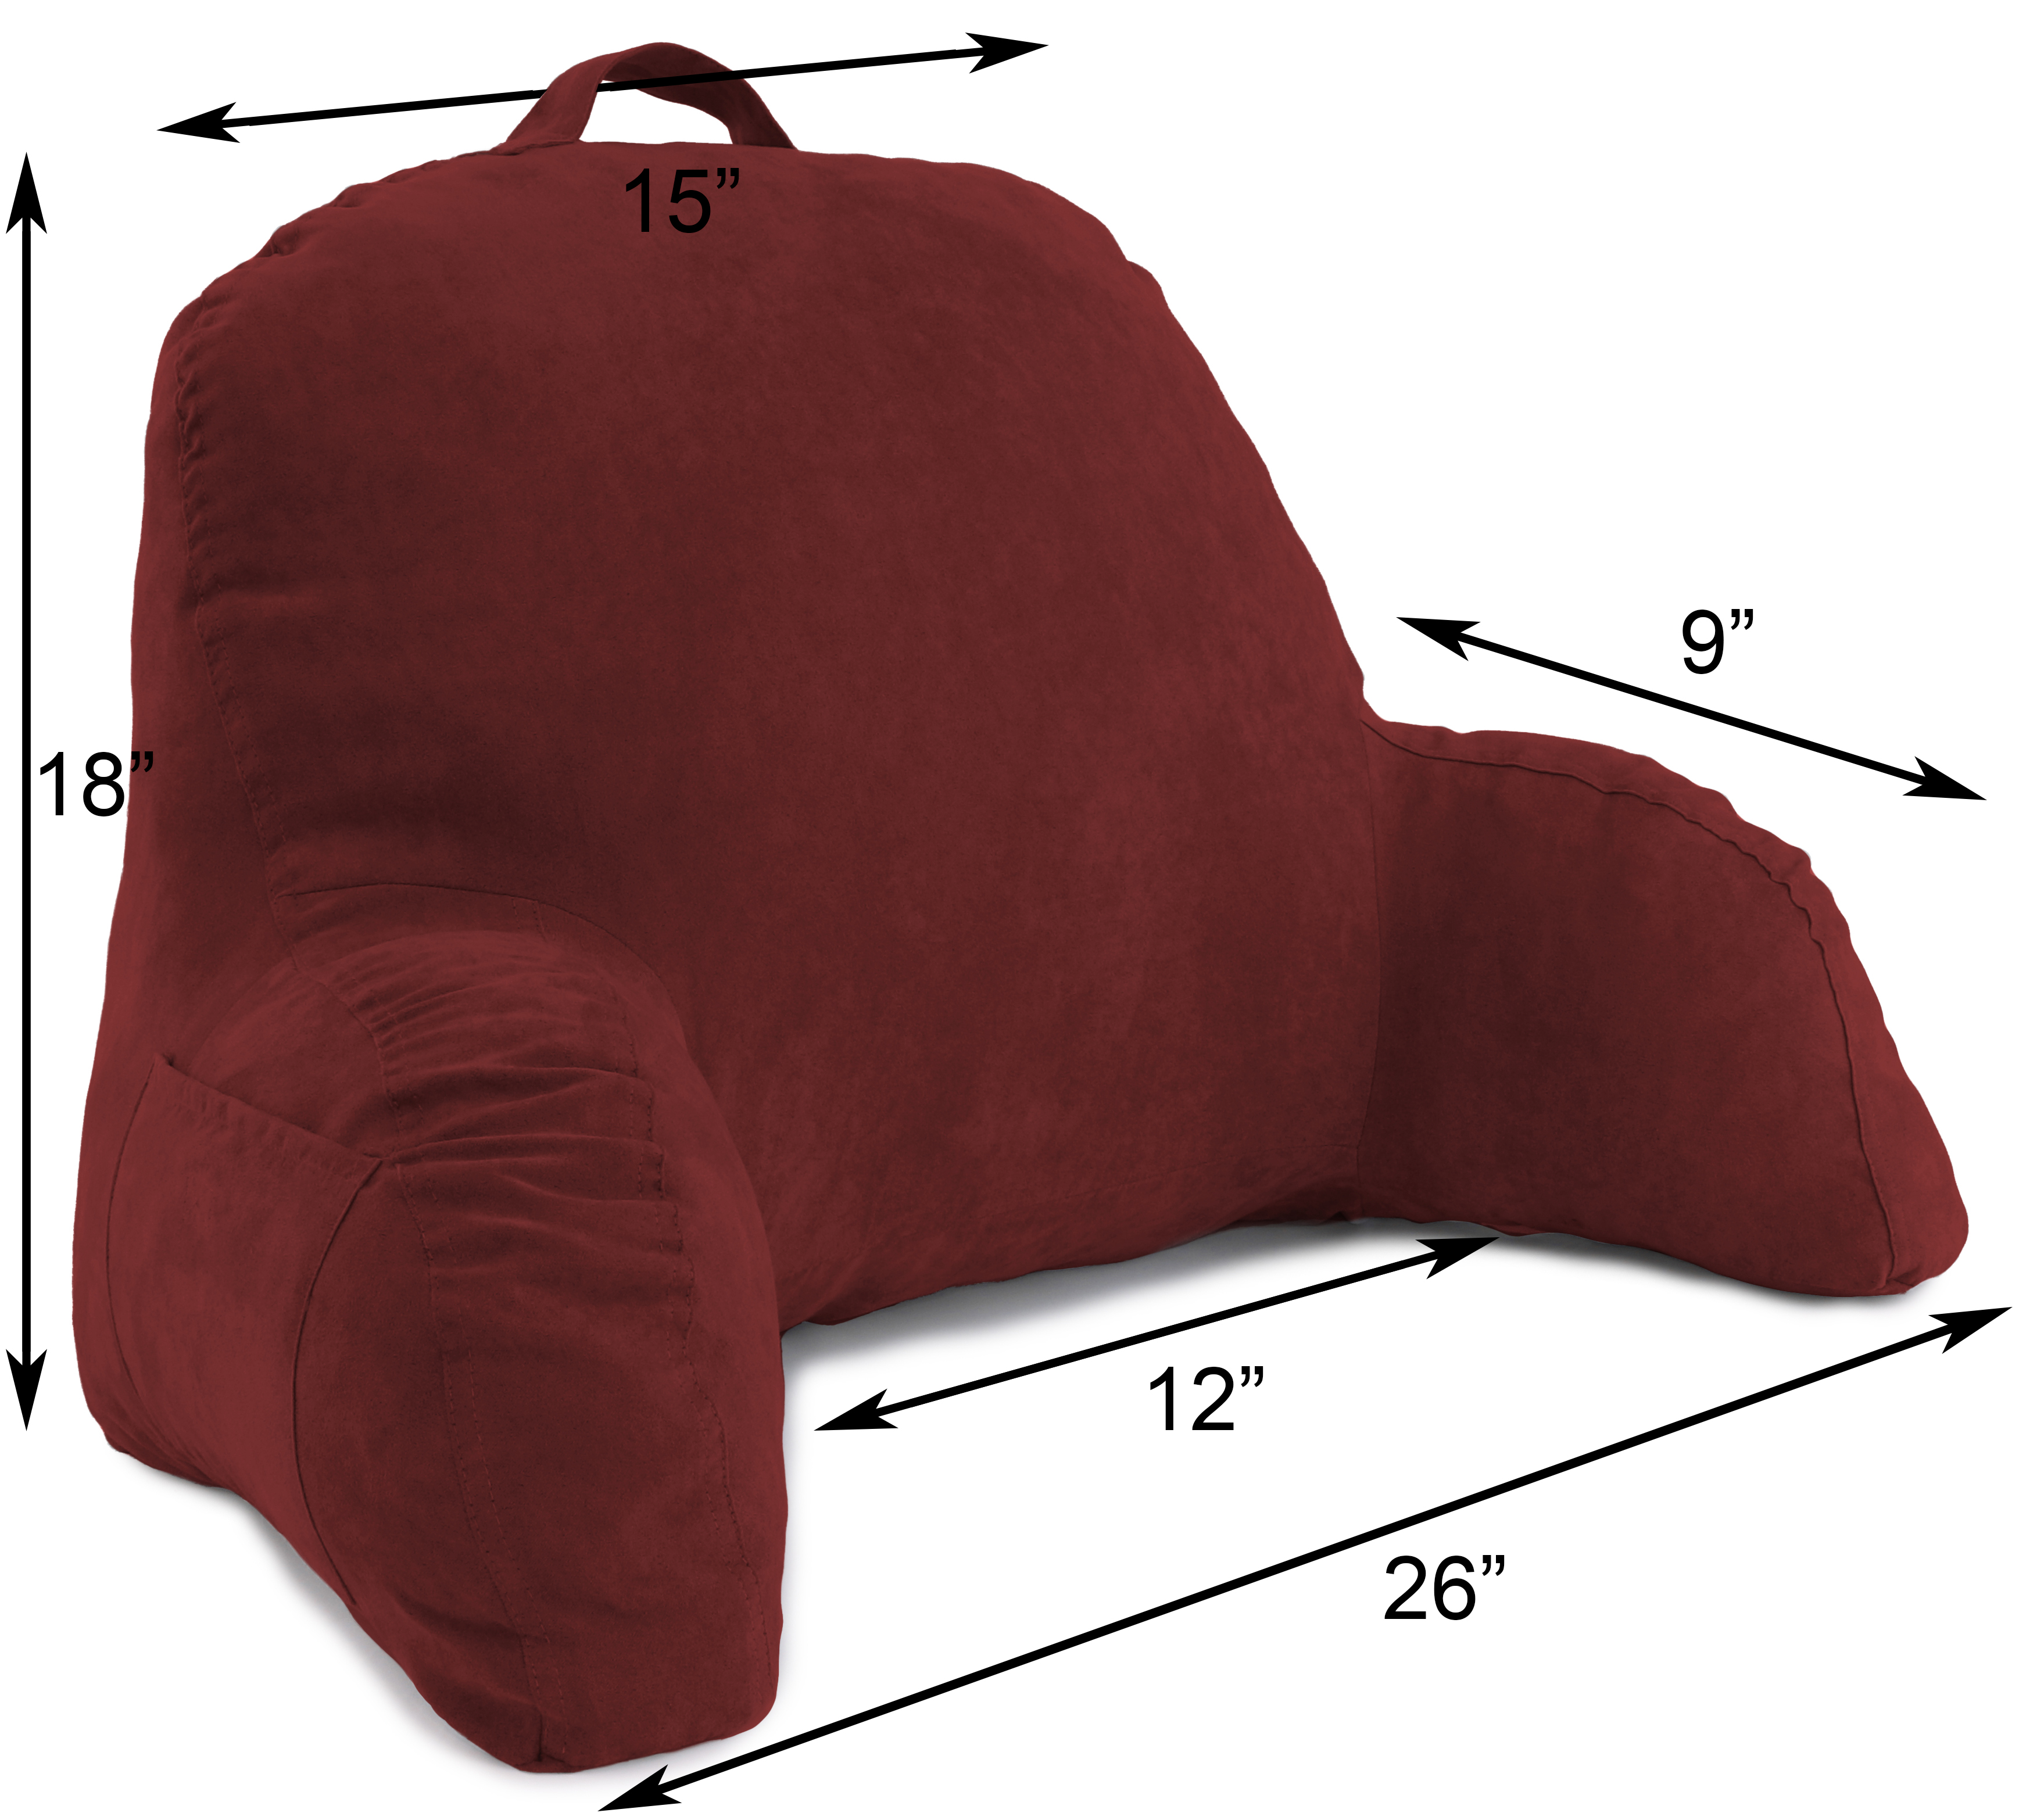 Microsuede-Bed-Rest-Reading-and-Bed-Rest-Lounger-Bed-Pillow thumbnail 42